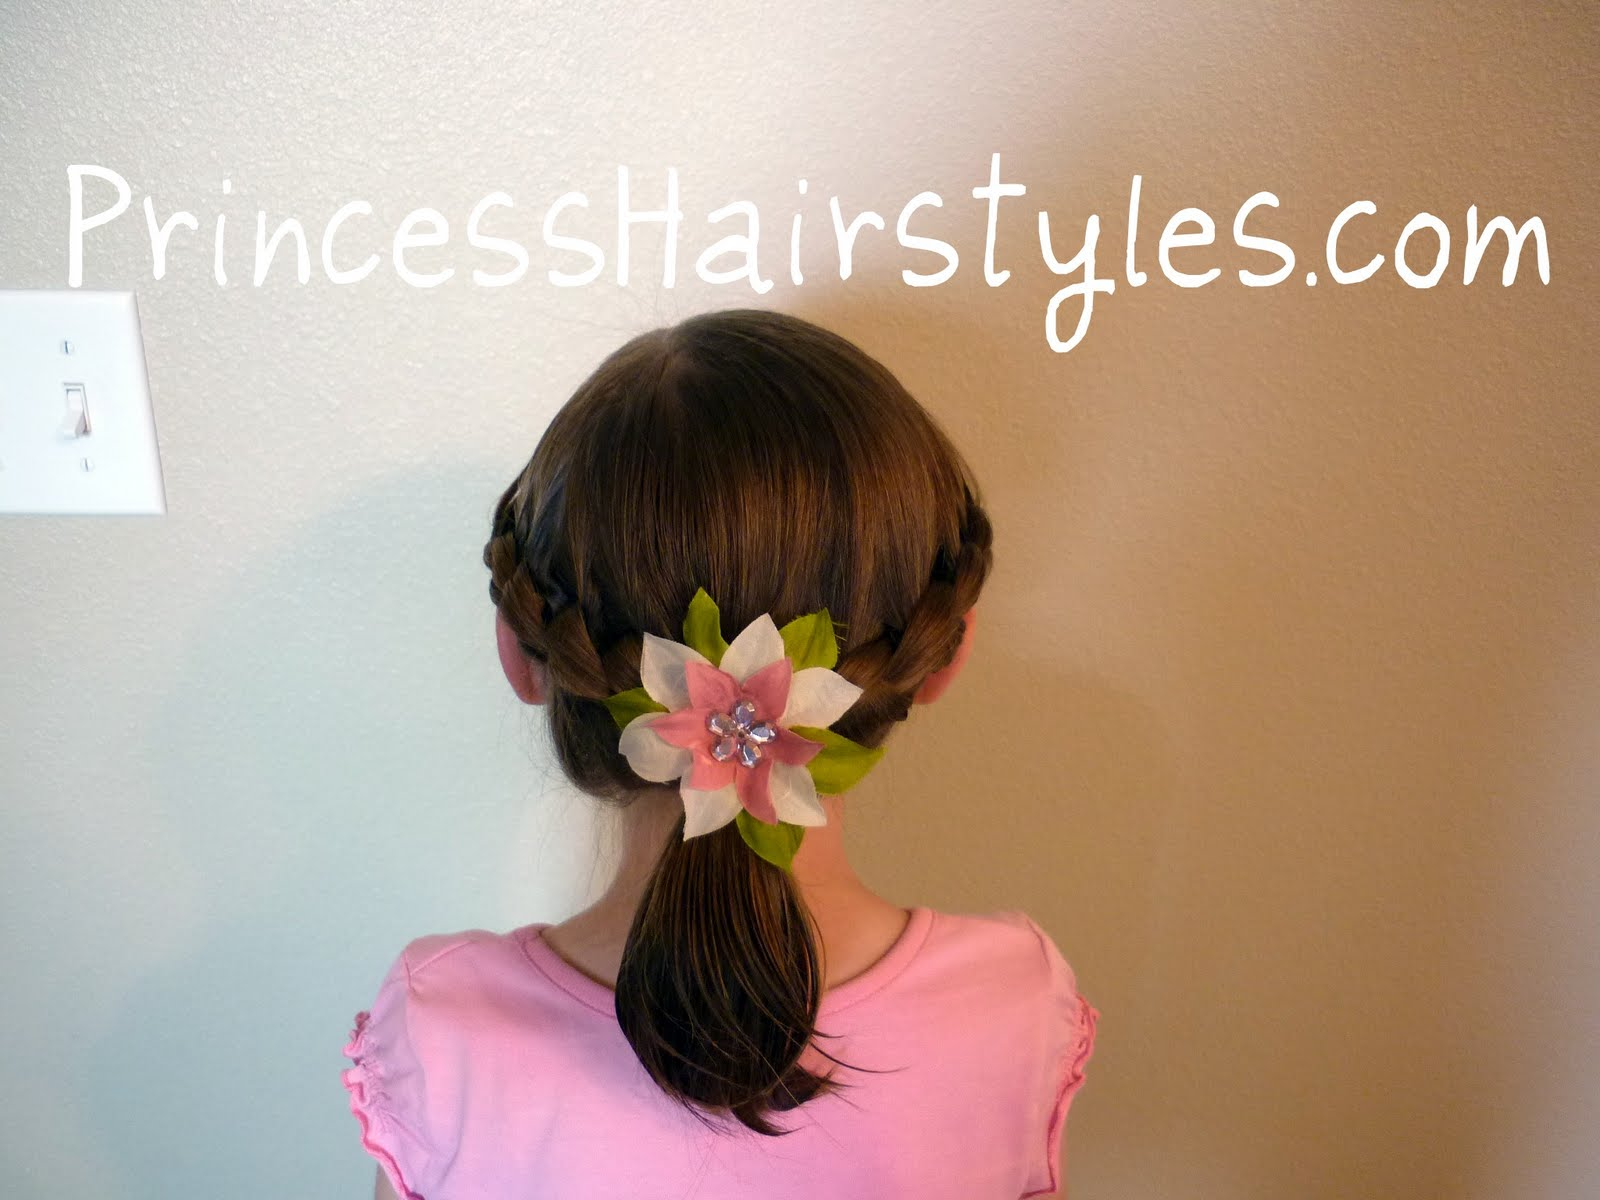 Superb Knotted Braid Hairstyle Hairstyles For Girls Princess Hairstyles Short Hairstyles Gunalazisus